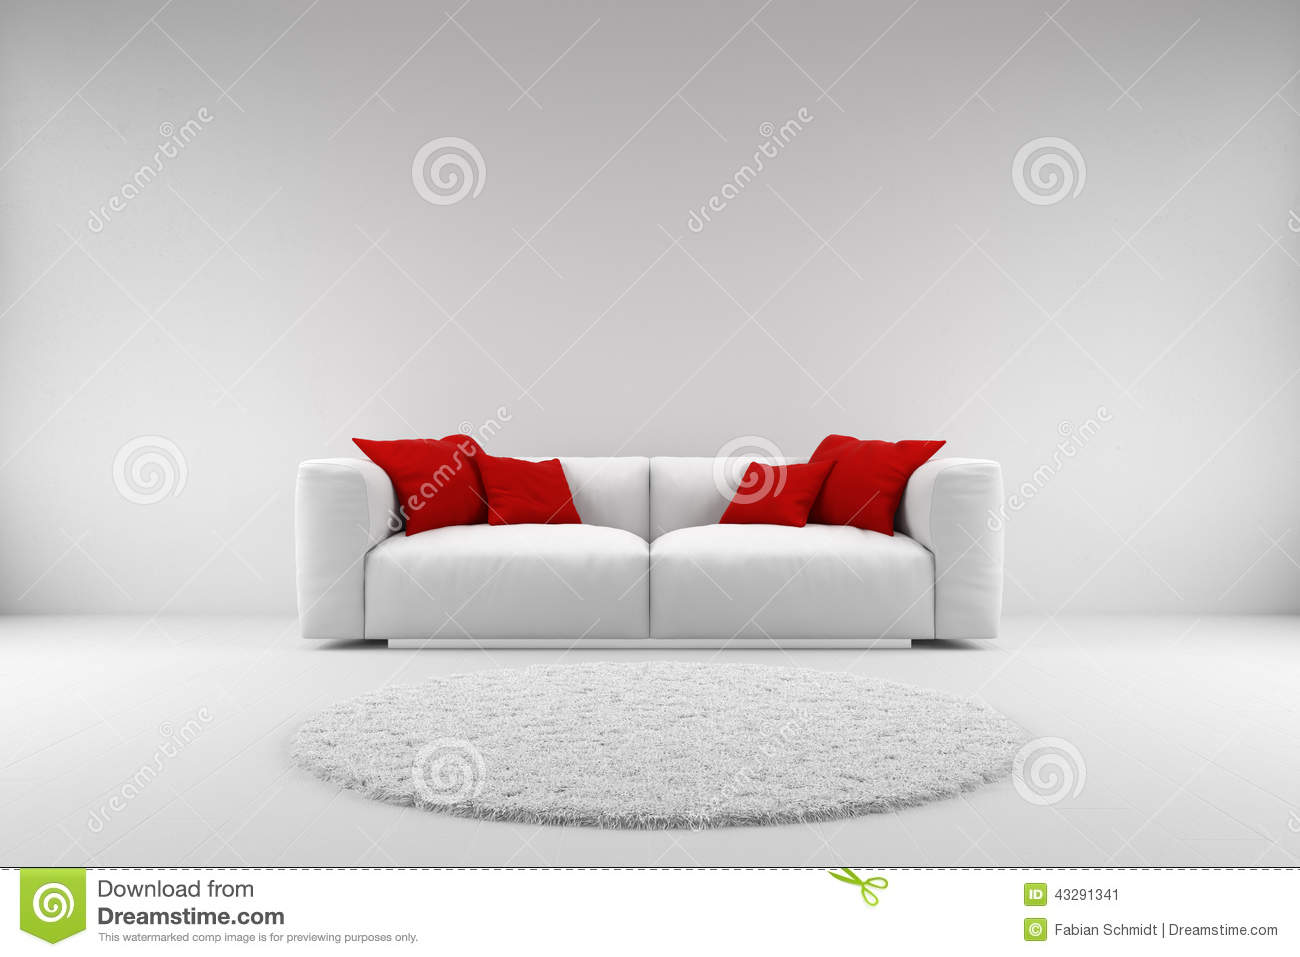 Modern blue and white bedroom - White Couch With Red Pillows And Carpet With Copy Space